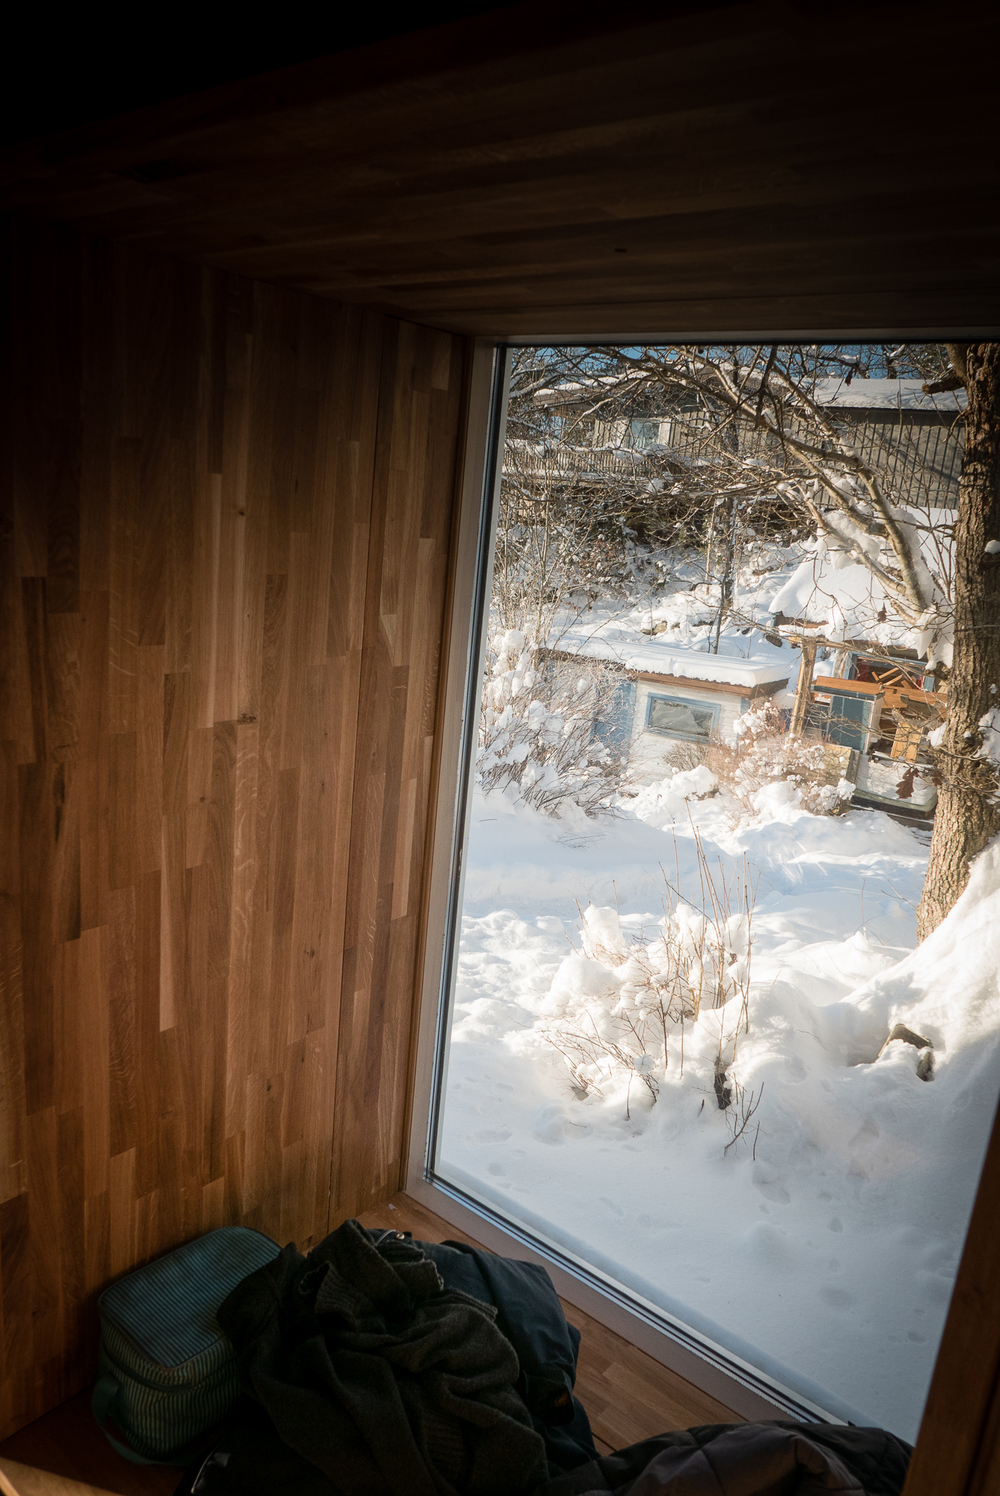 From the window niche in the play area, overlooking the snowy approach and the existing annex cabins